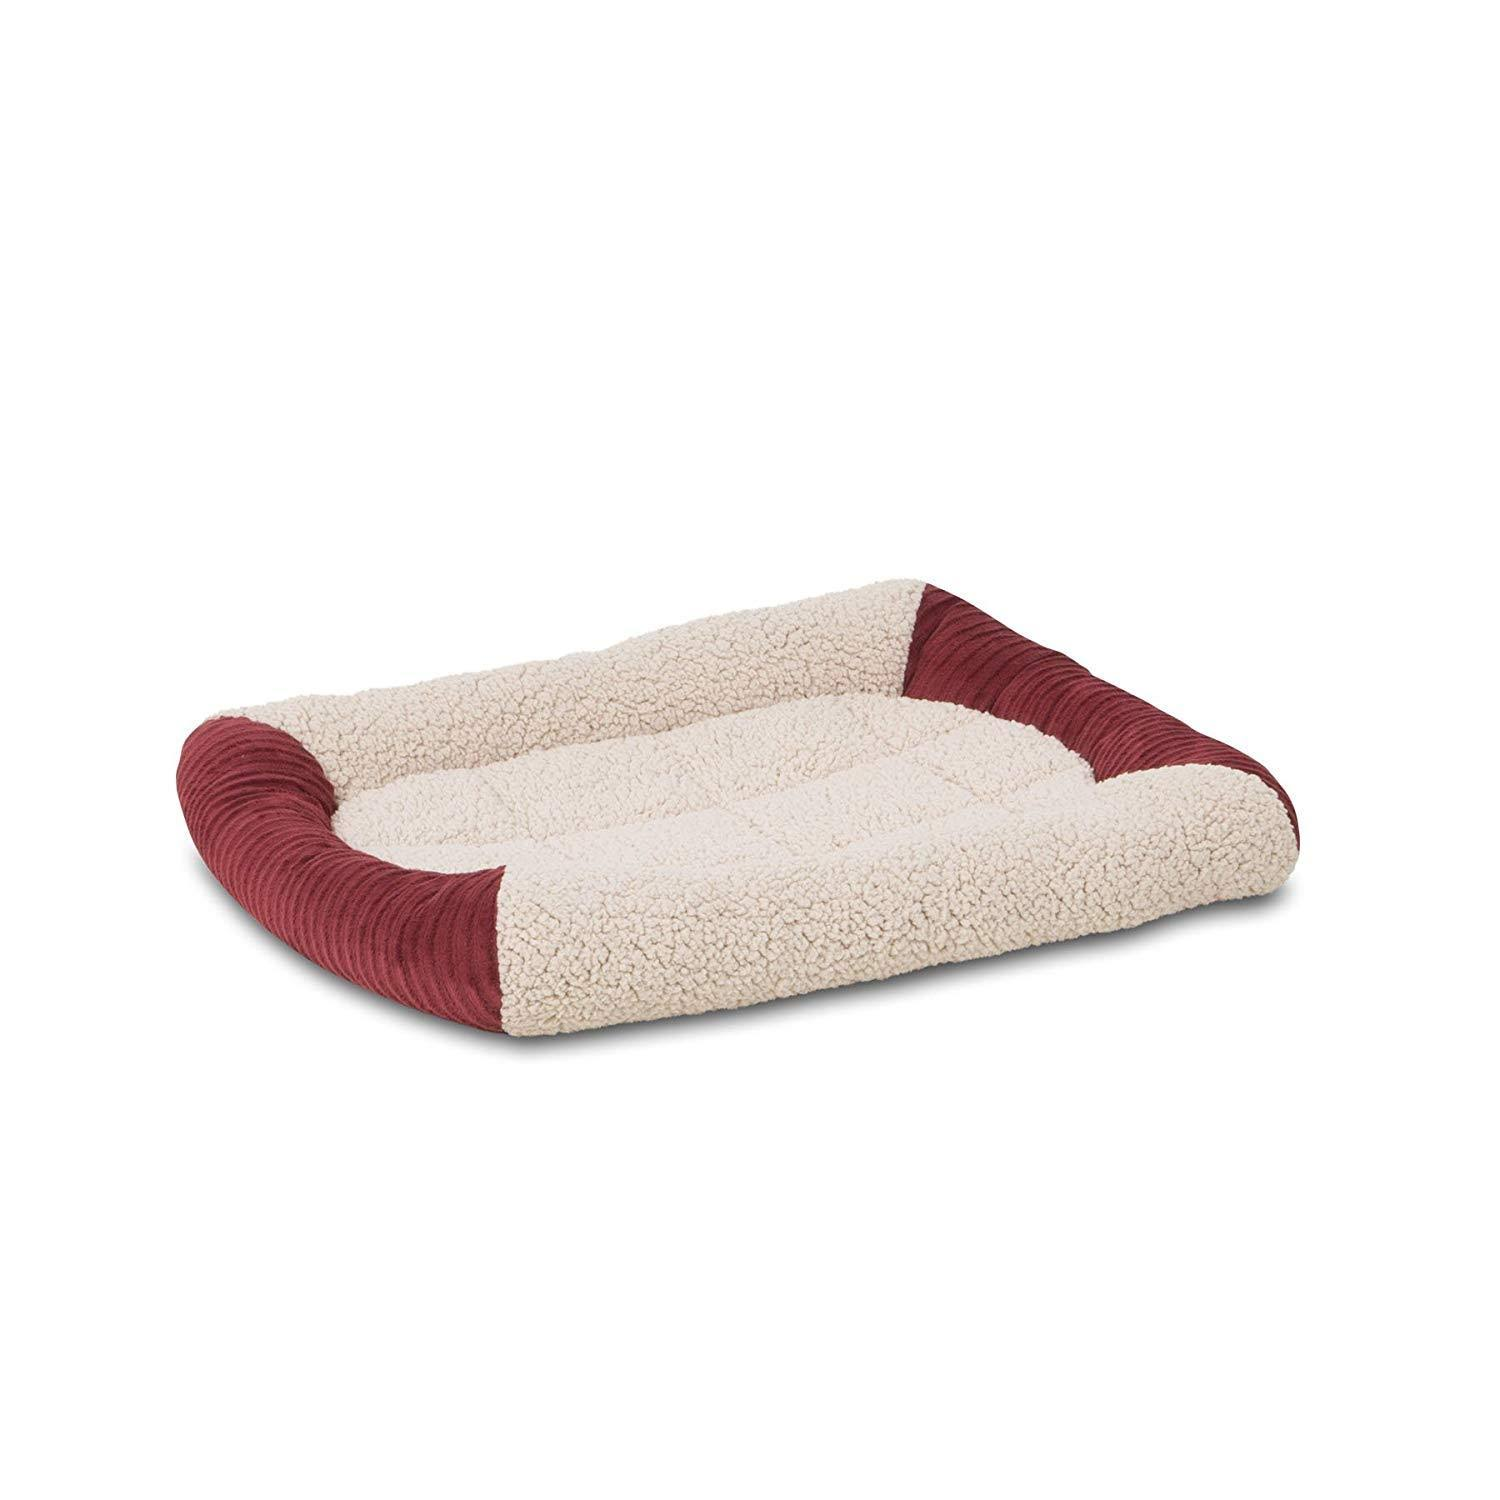 "Petmate Self Warm Bolster Mat - 20.5"" x 14"""